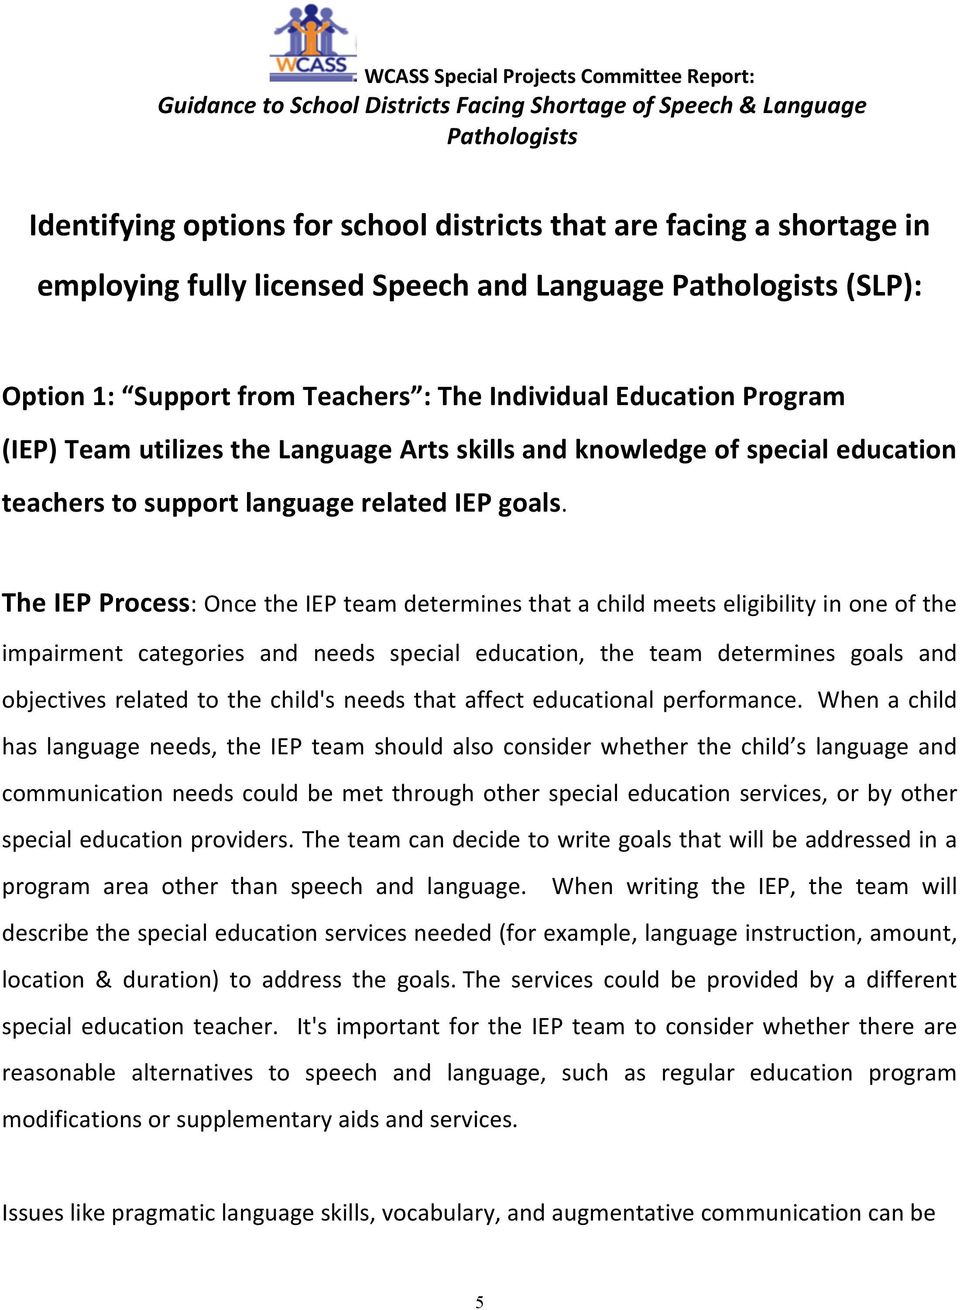 language related IEP gals.